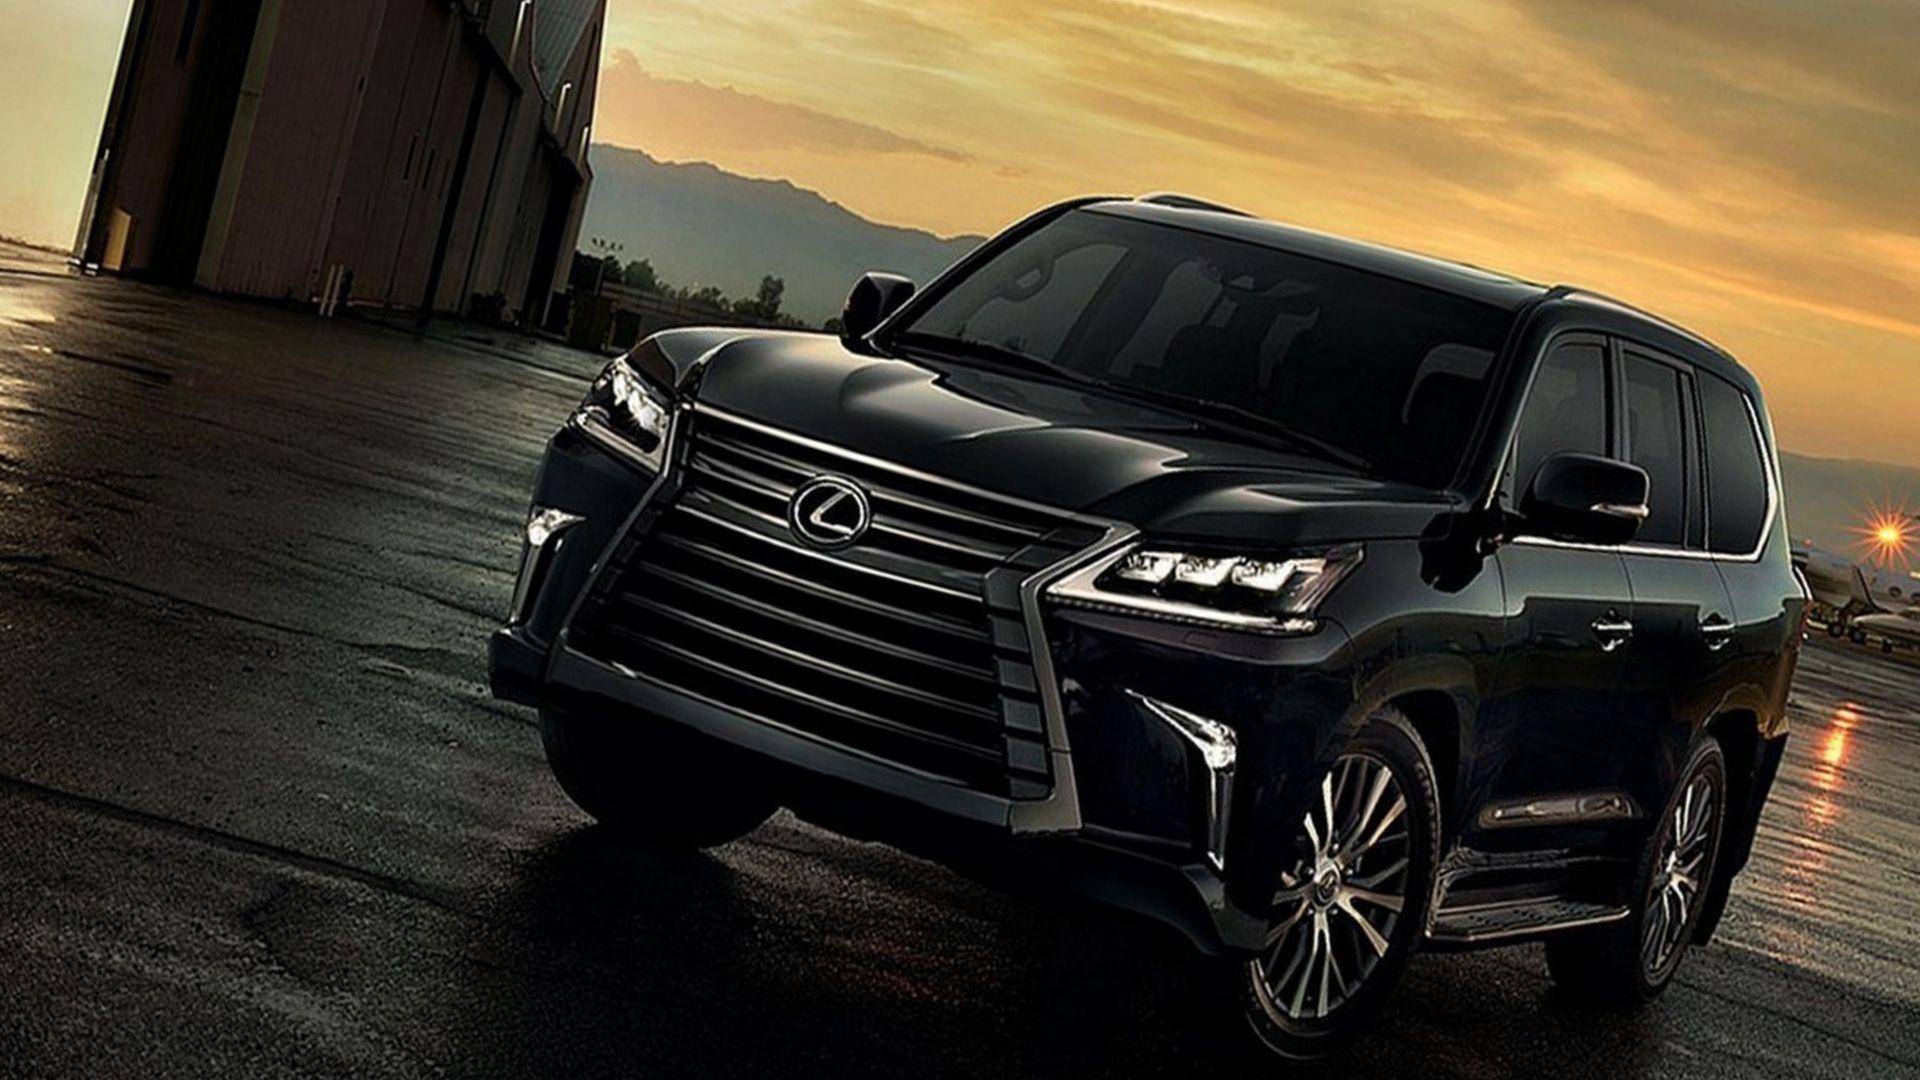 Lexus Lx 570 Wallpapers Wallpaper Cave